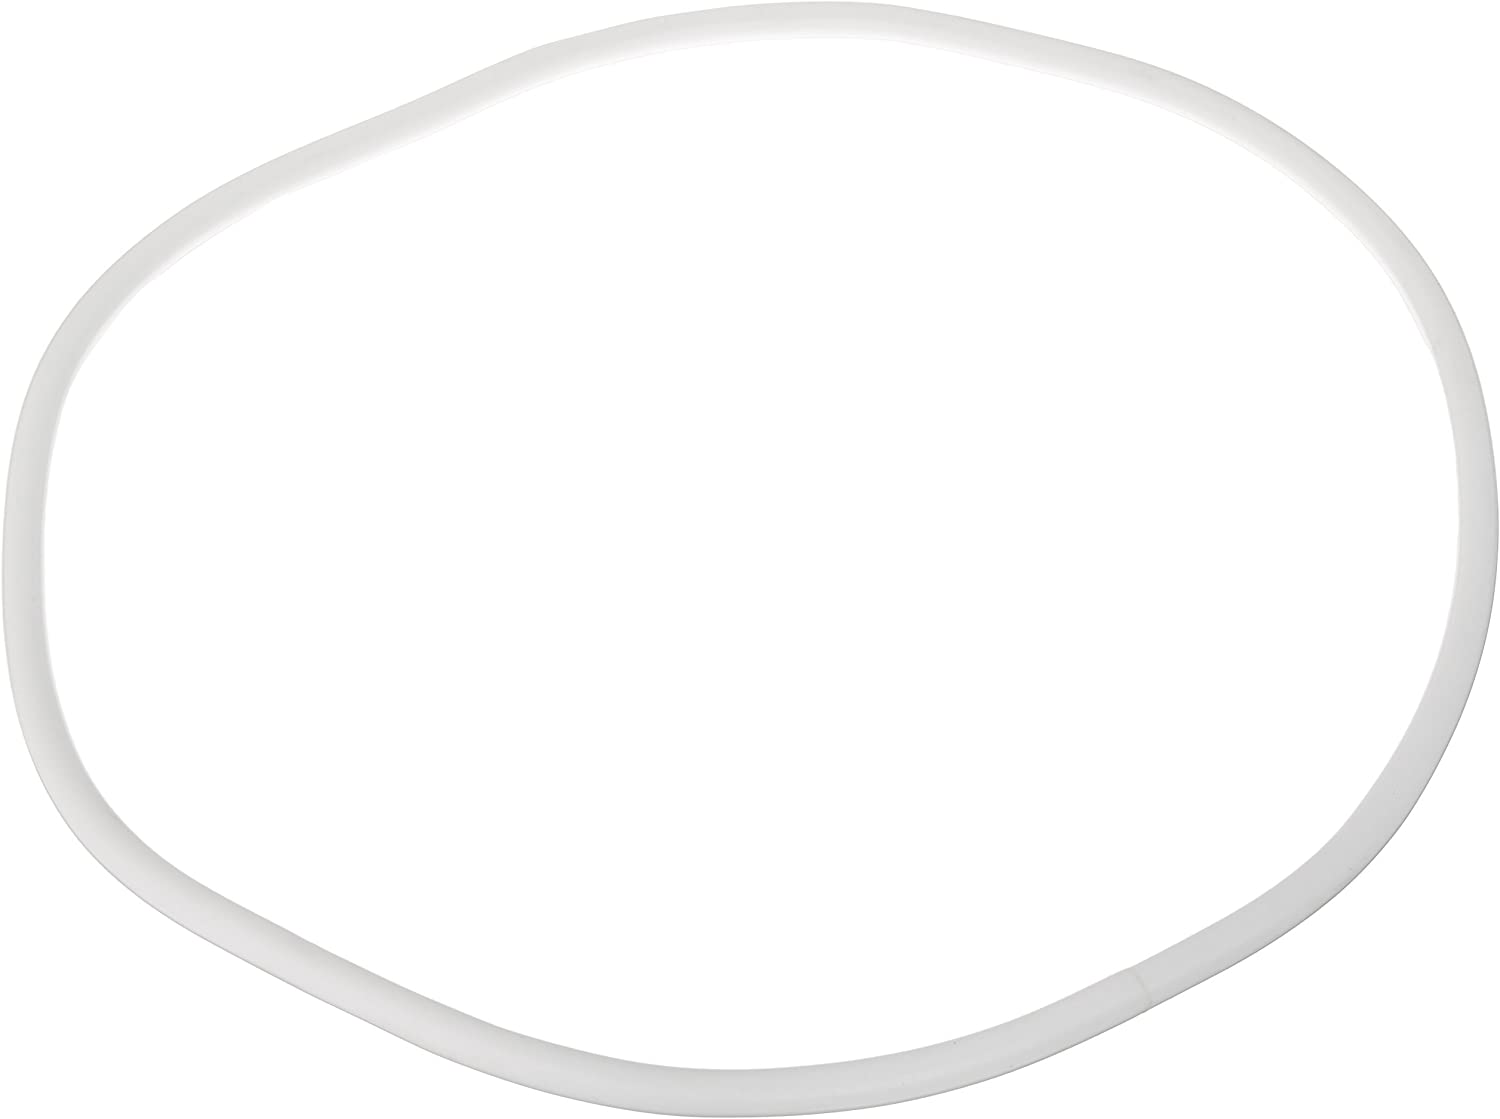 Cambro 12119 Replacement Gasket for Camcarrier